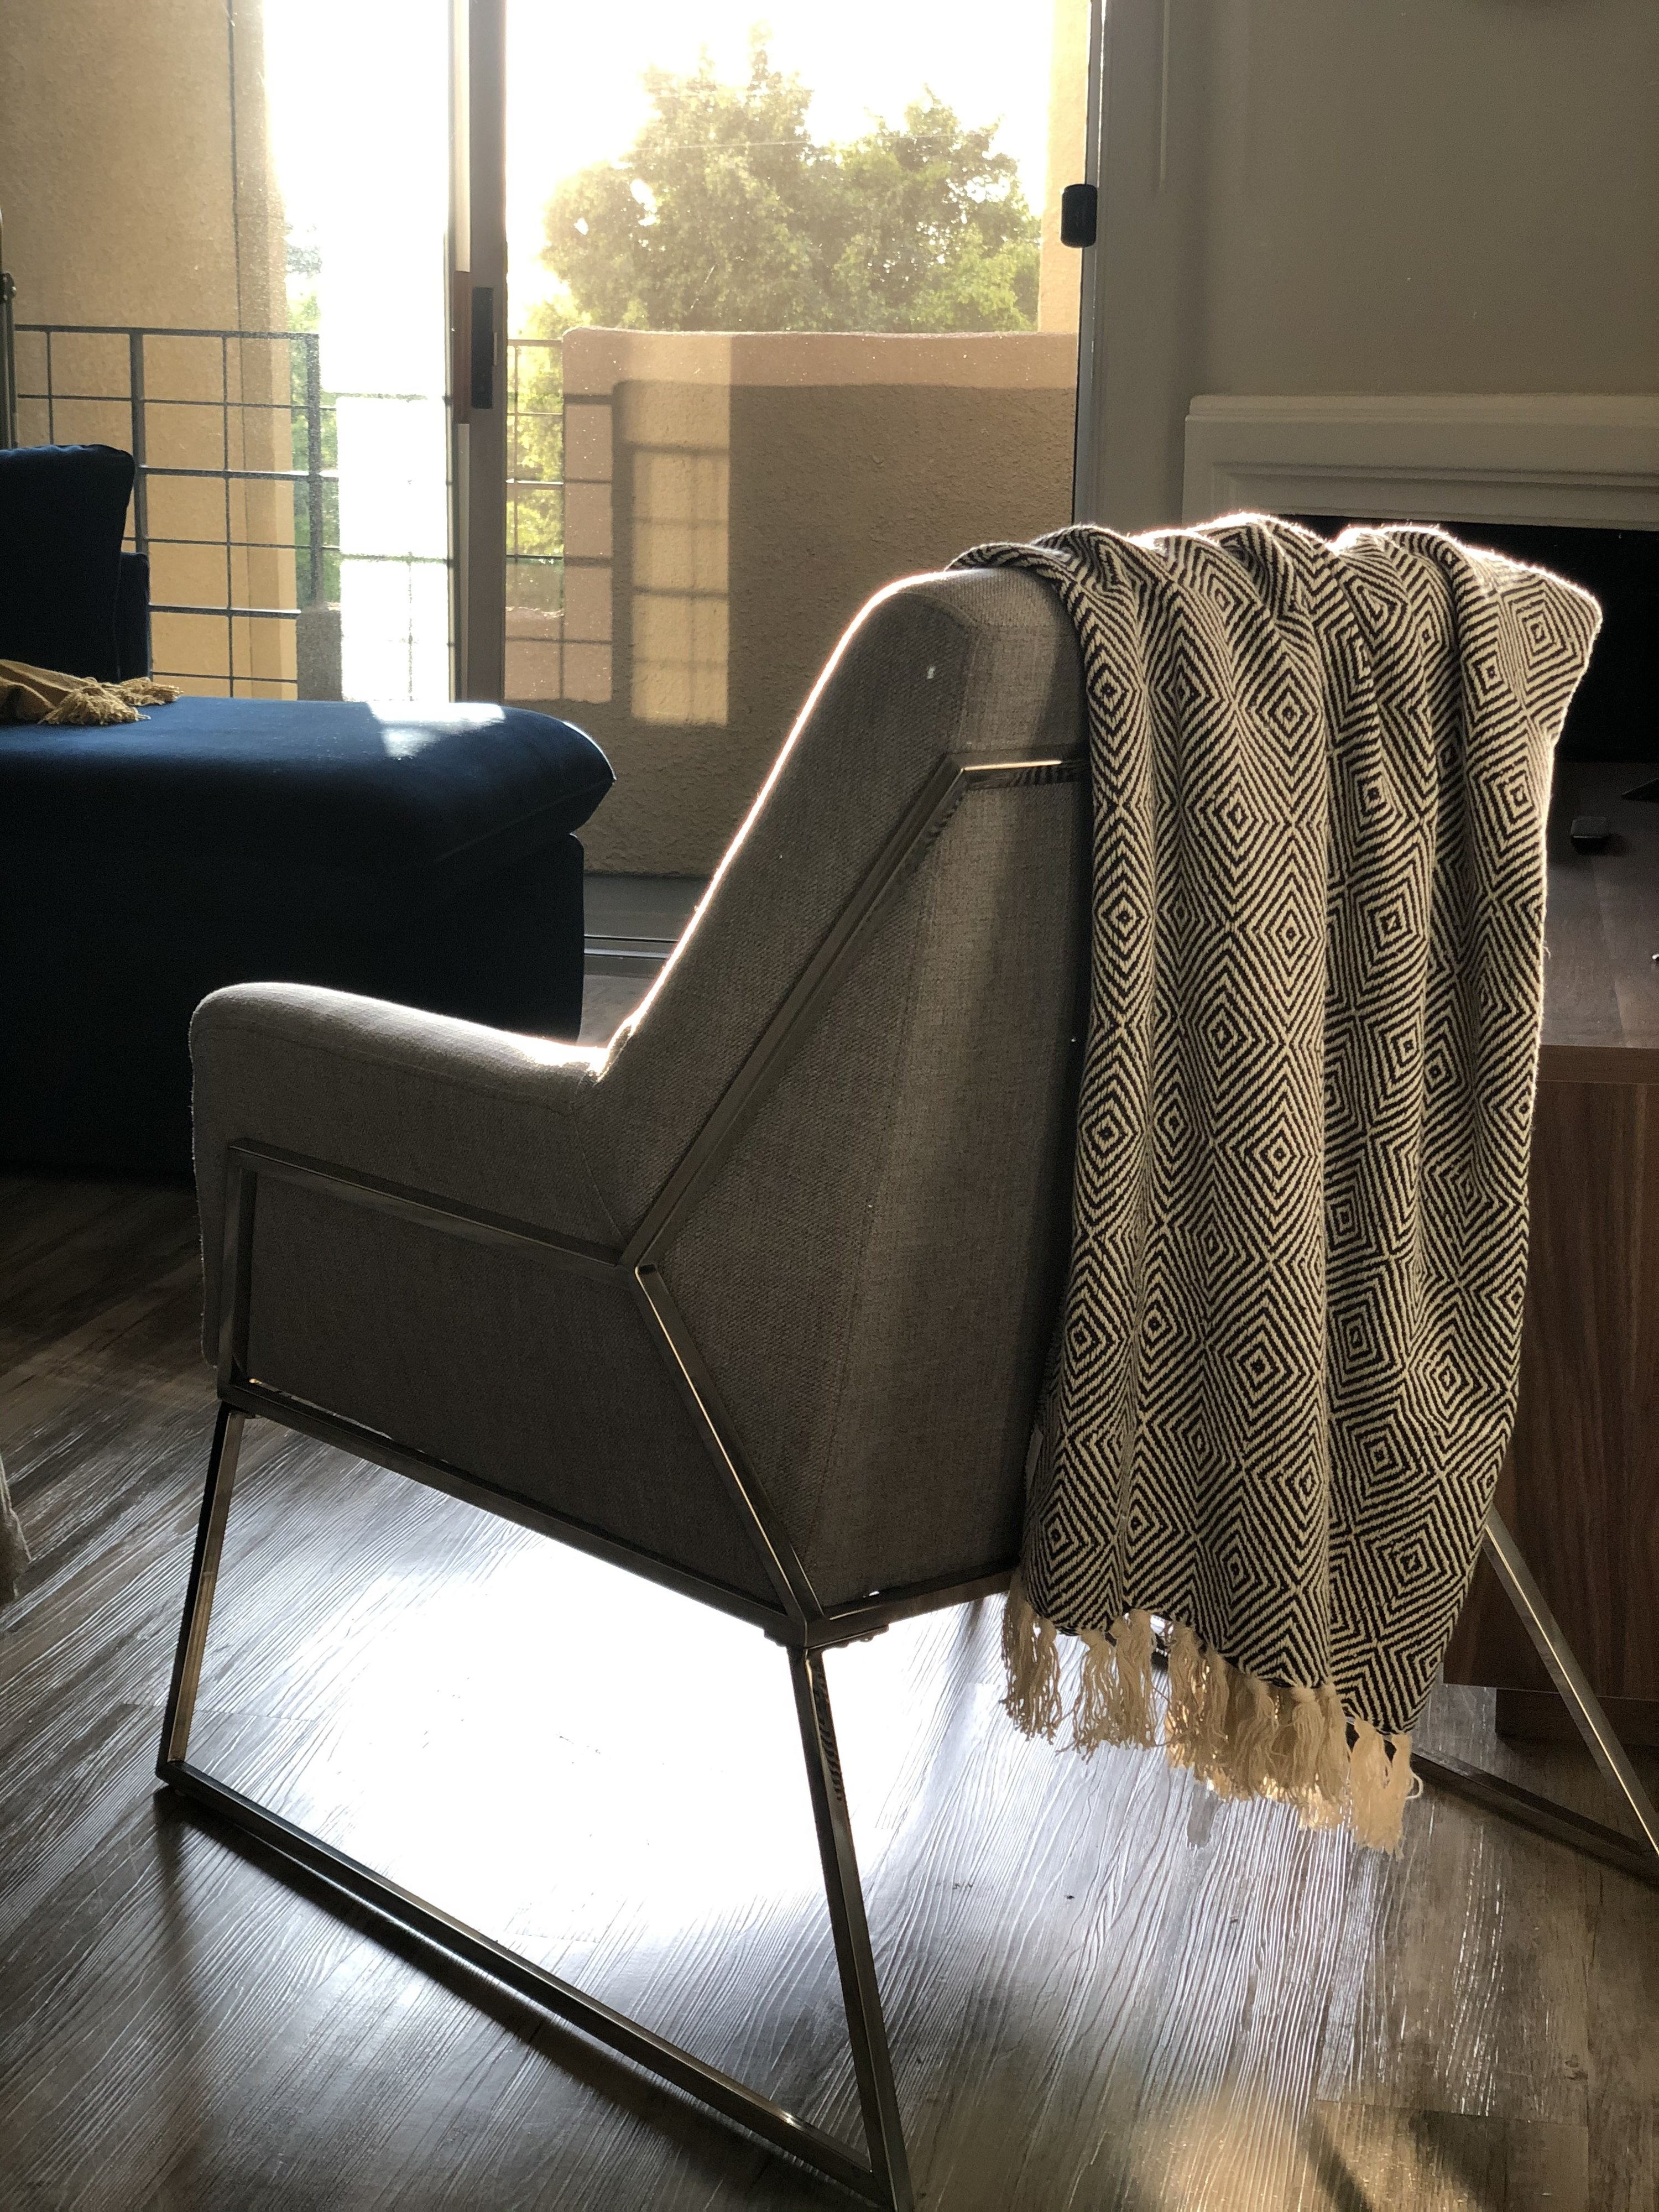 Portrait mode photo of mid-century modern gray armchair with a gray patterned throw blanket.